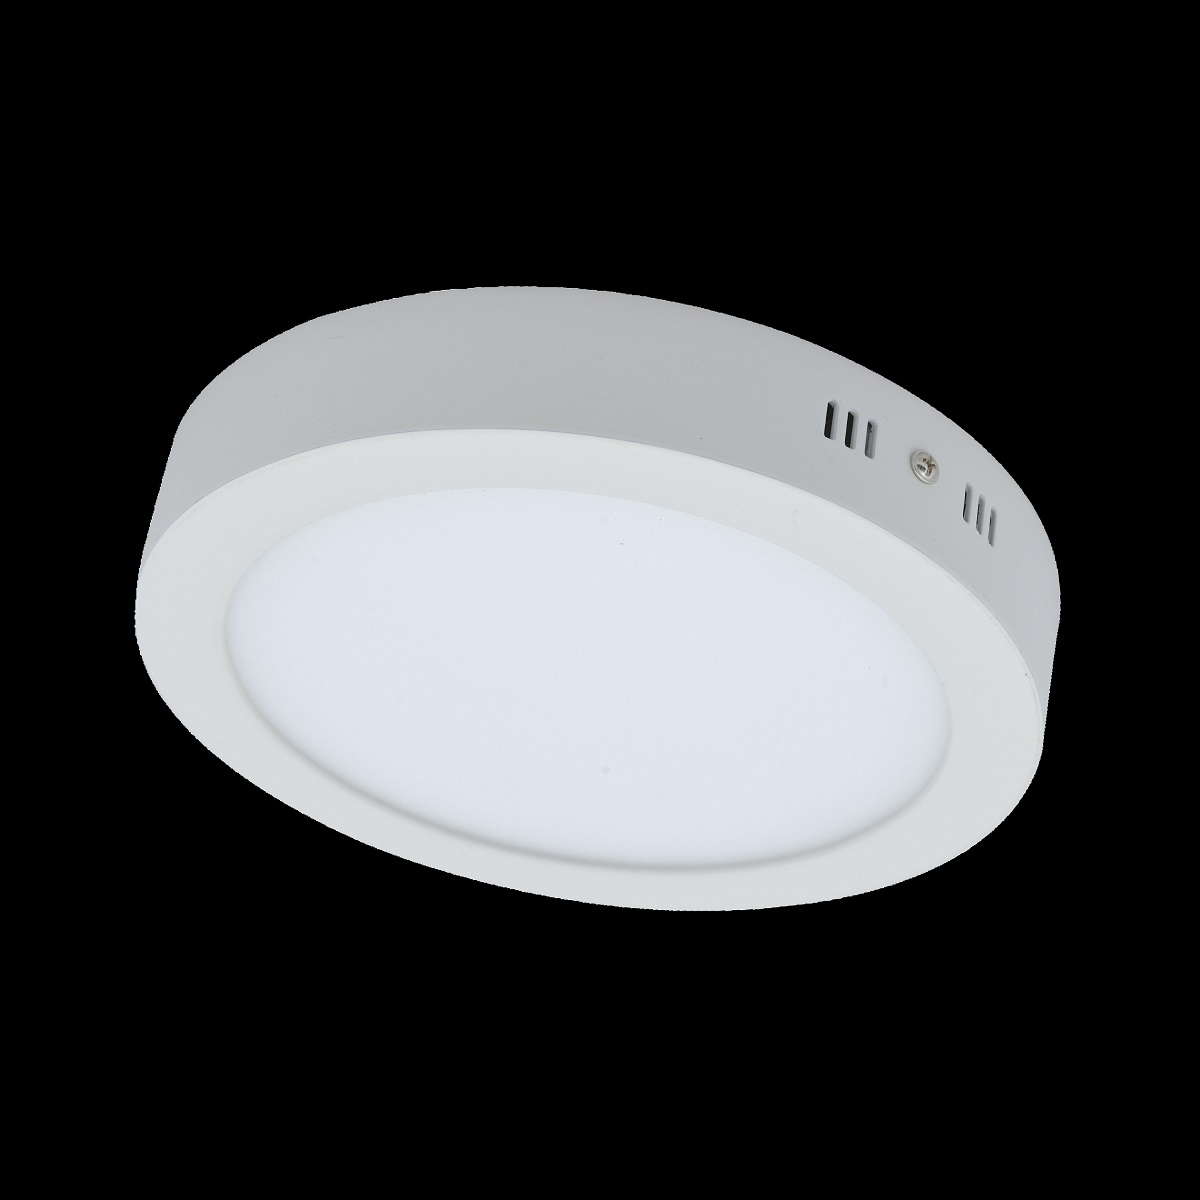 lighting led products lights modern light ceiling shades ringed of